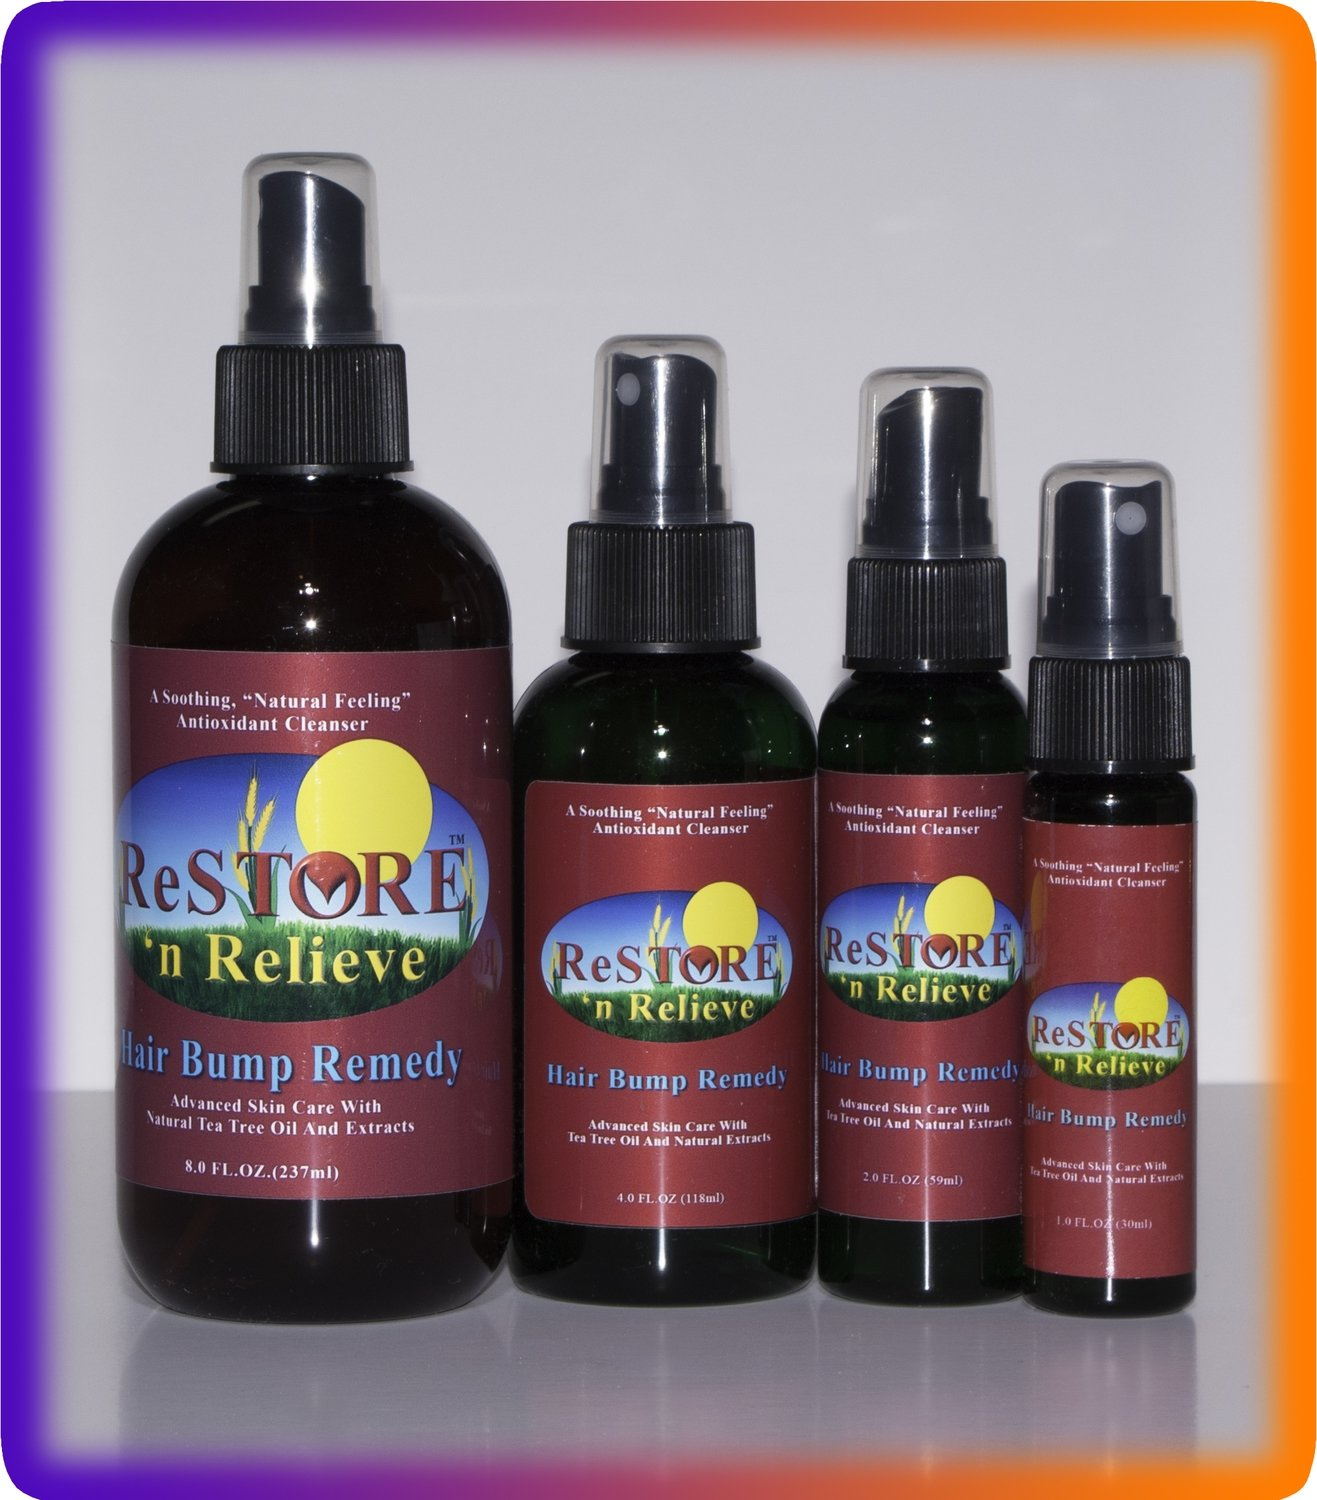 ReSTORE Hair Bump Remedy